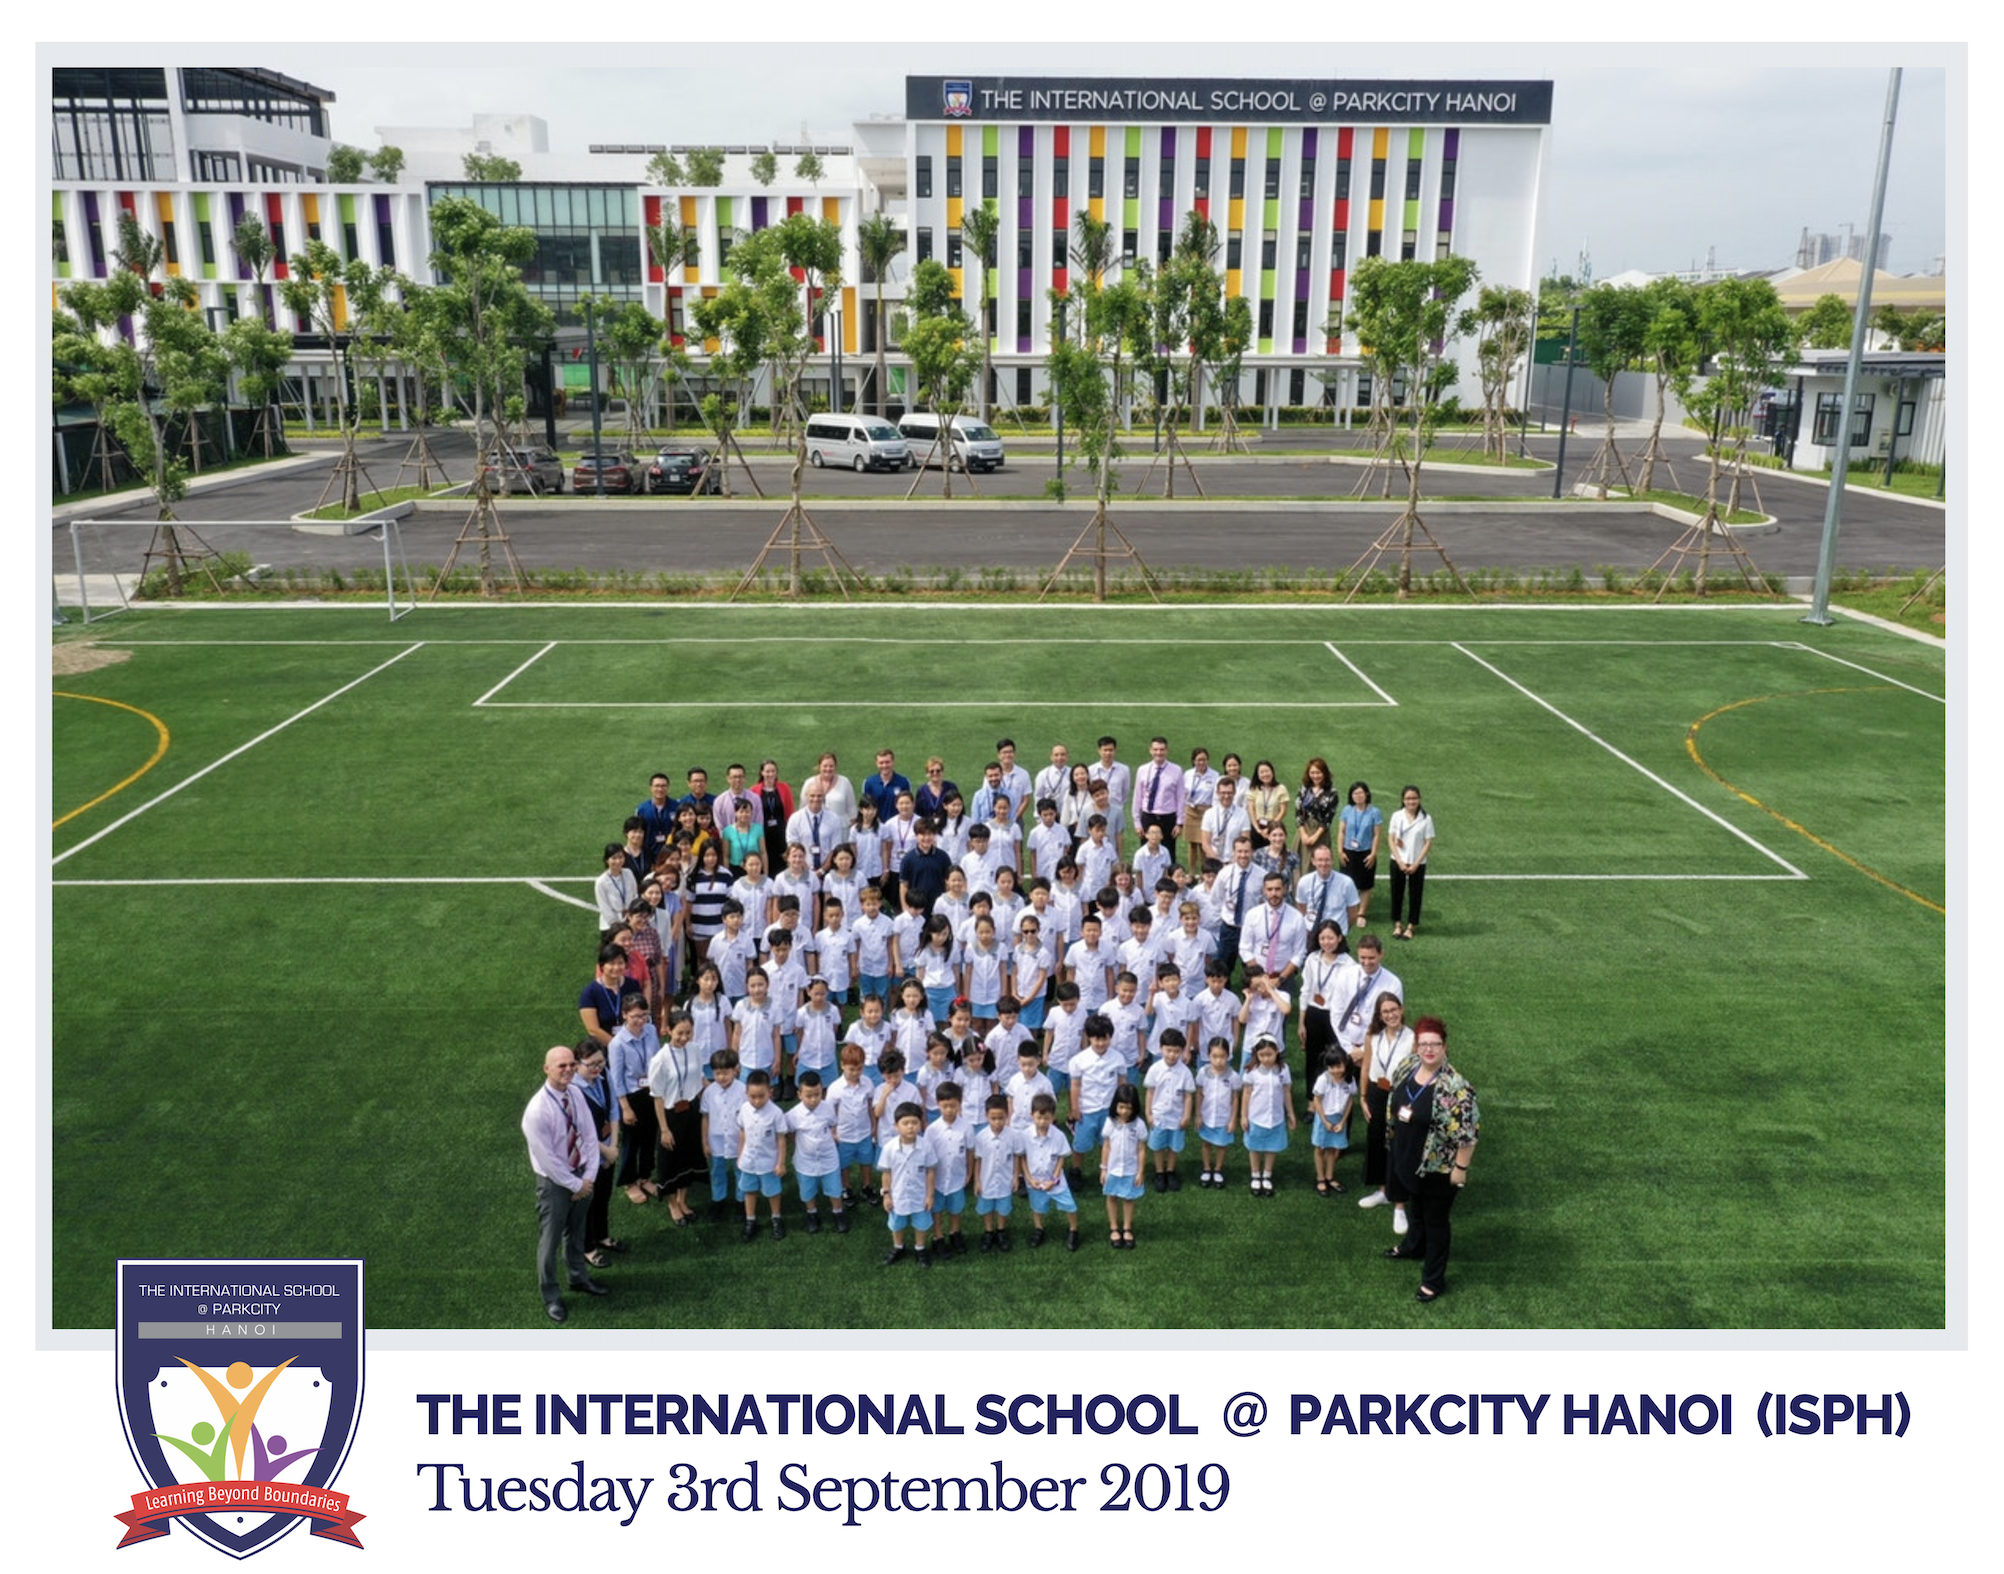 ISPH Whole School Photo - 3rd September 2019